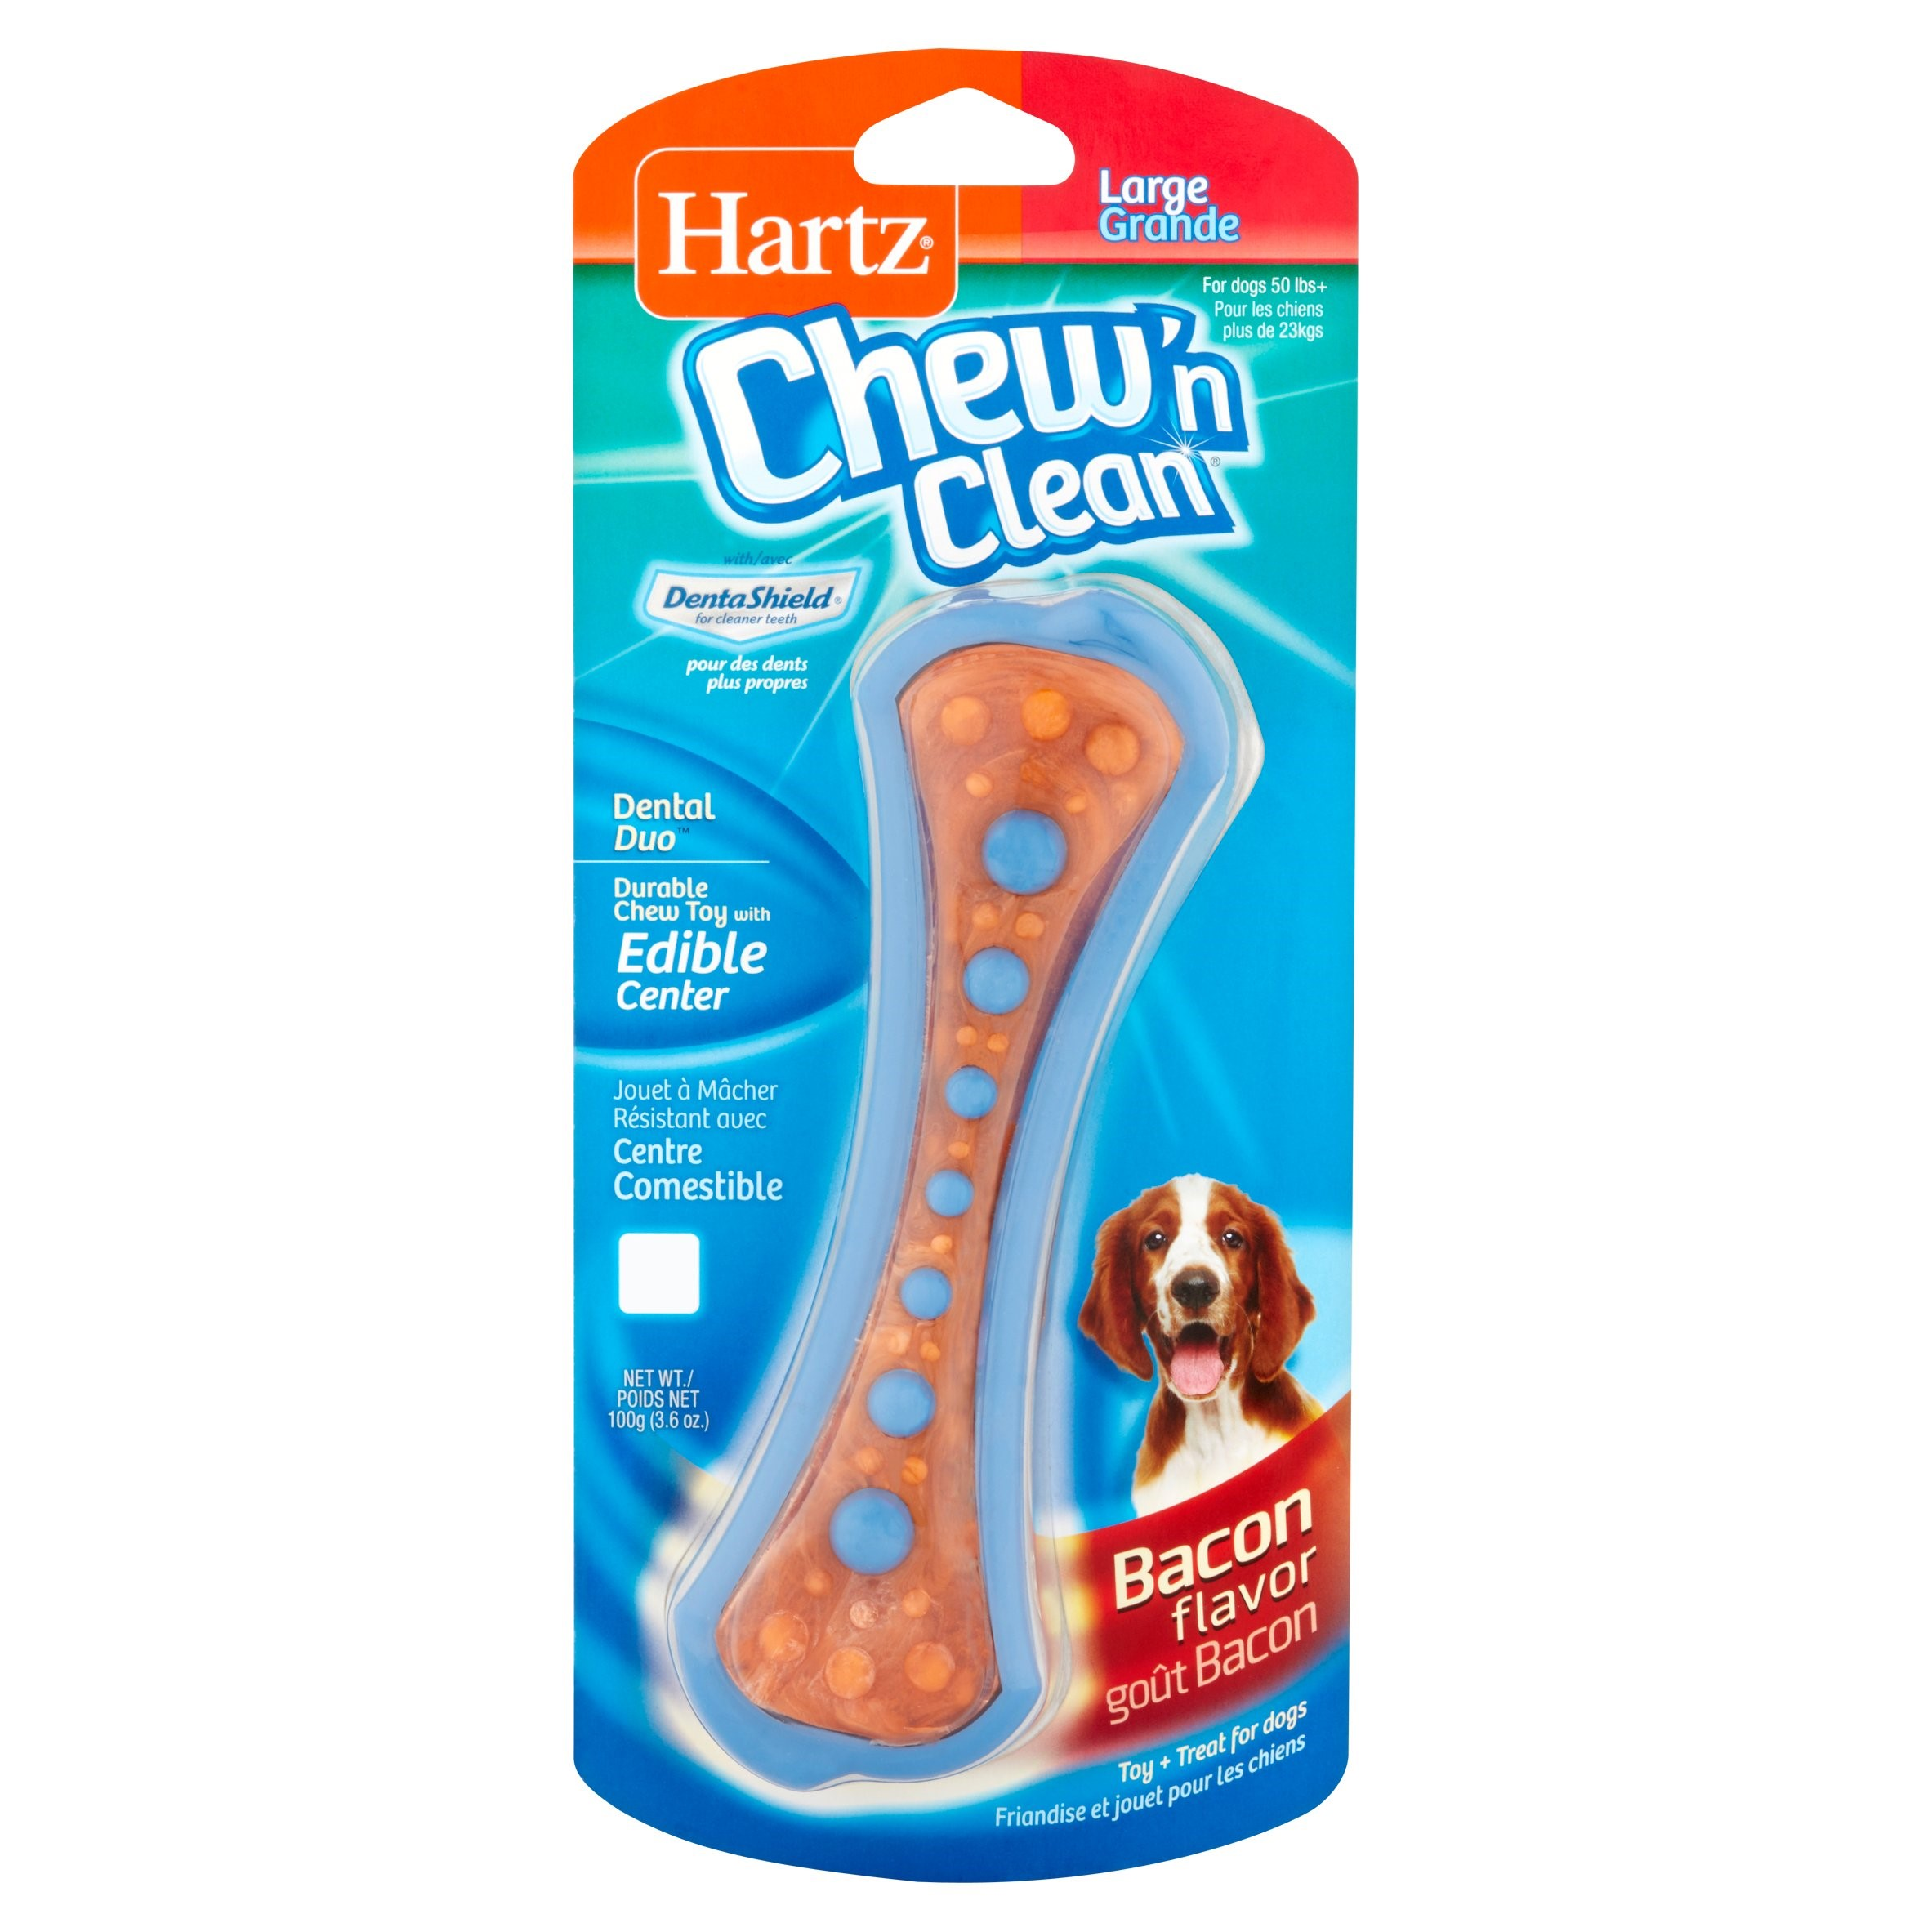 Hartz Chew-N-Clean with DentaShield Bacon Flavor Durable Chew Toy, Large